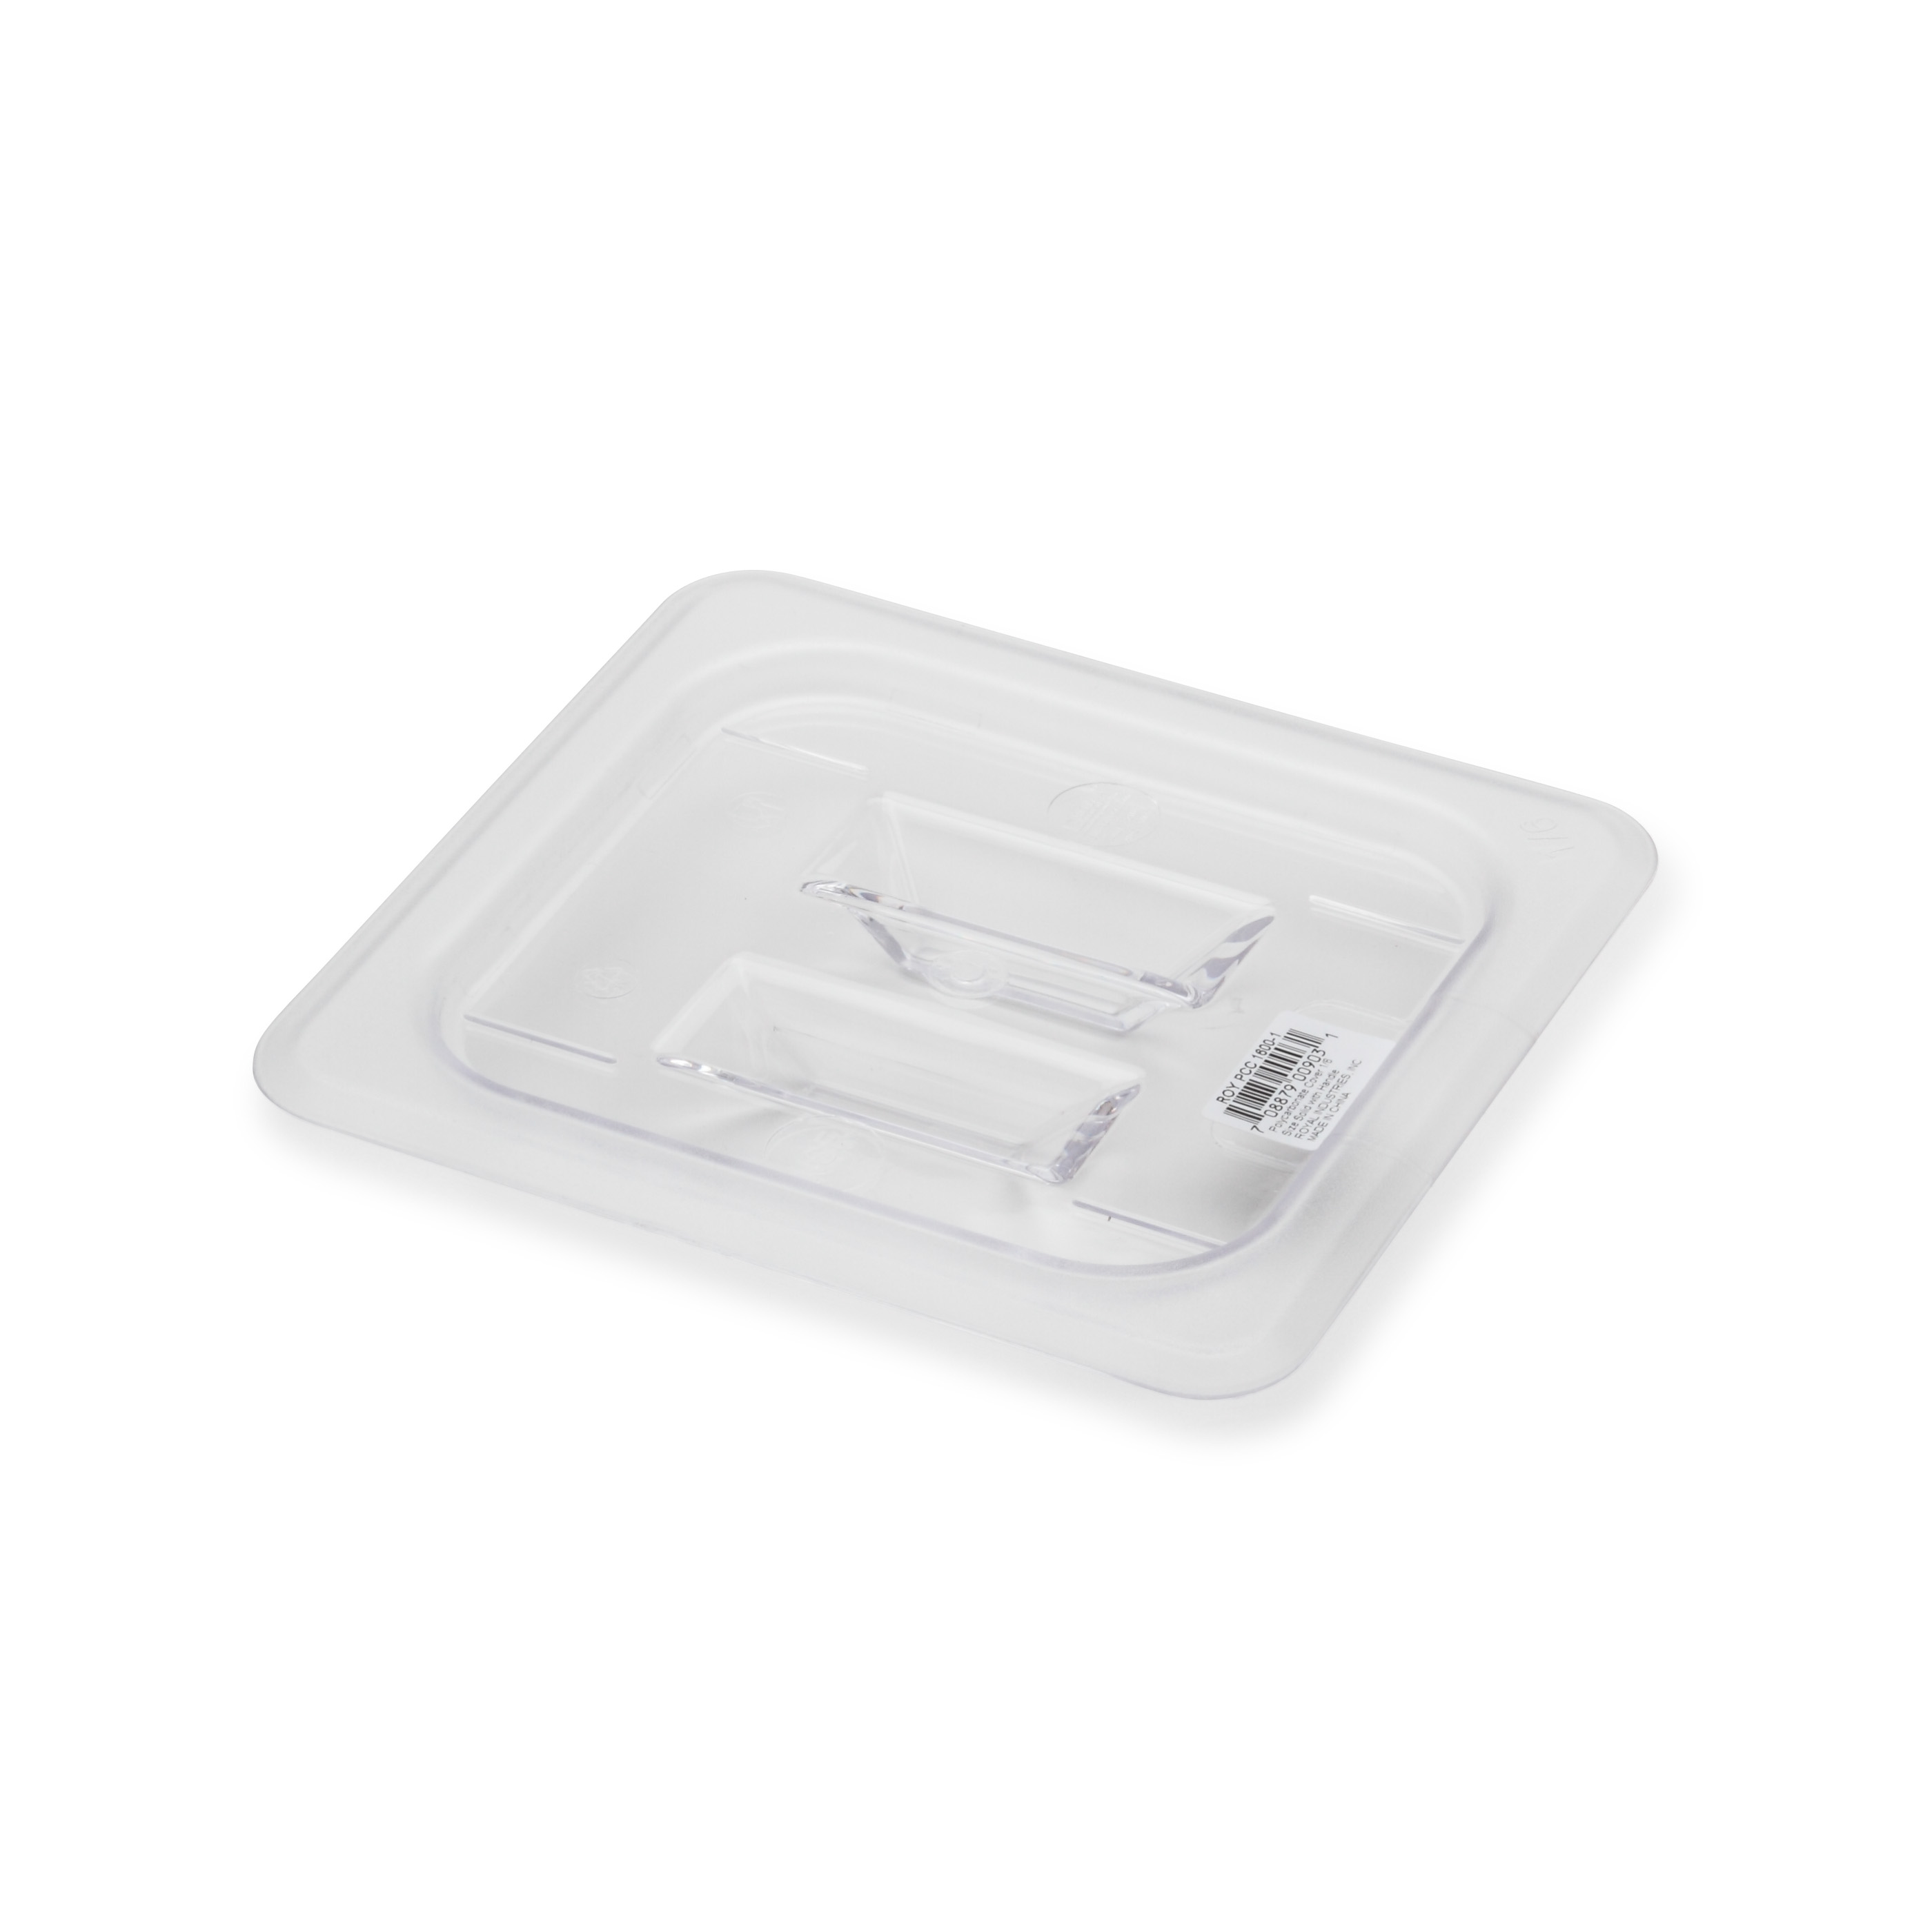 Royal Industries ROY PCC 1600-1 food pan cover, plastic